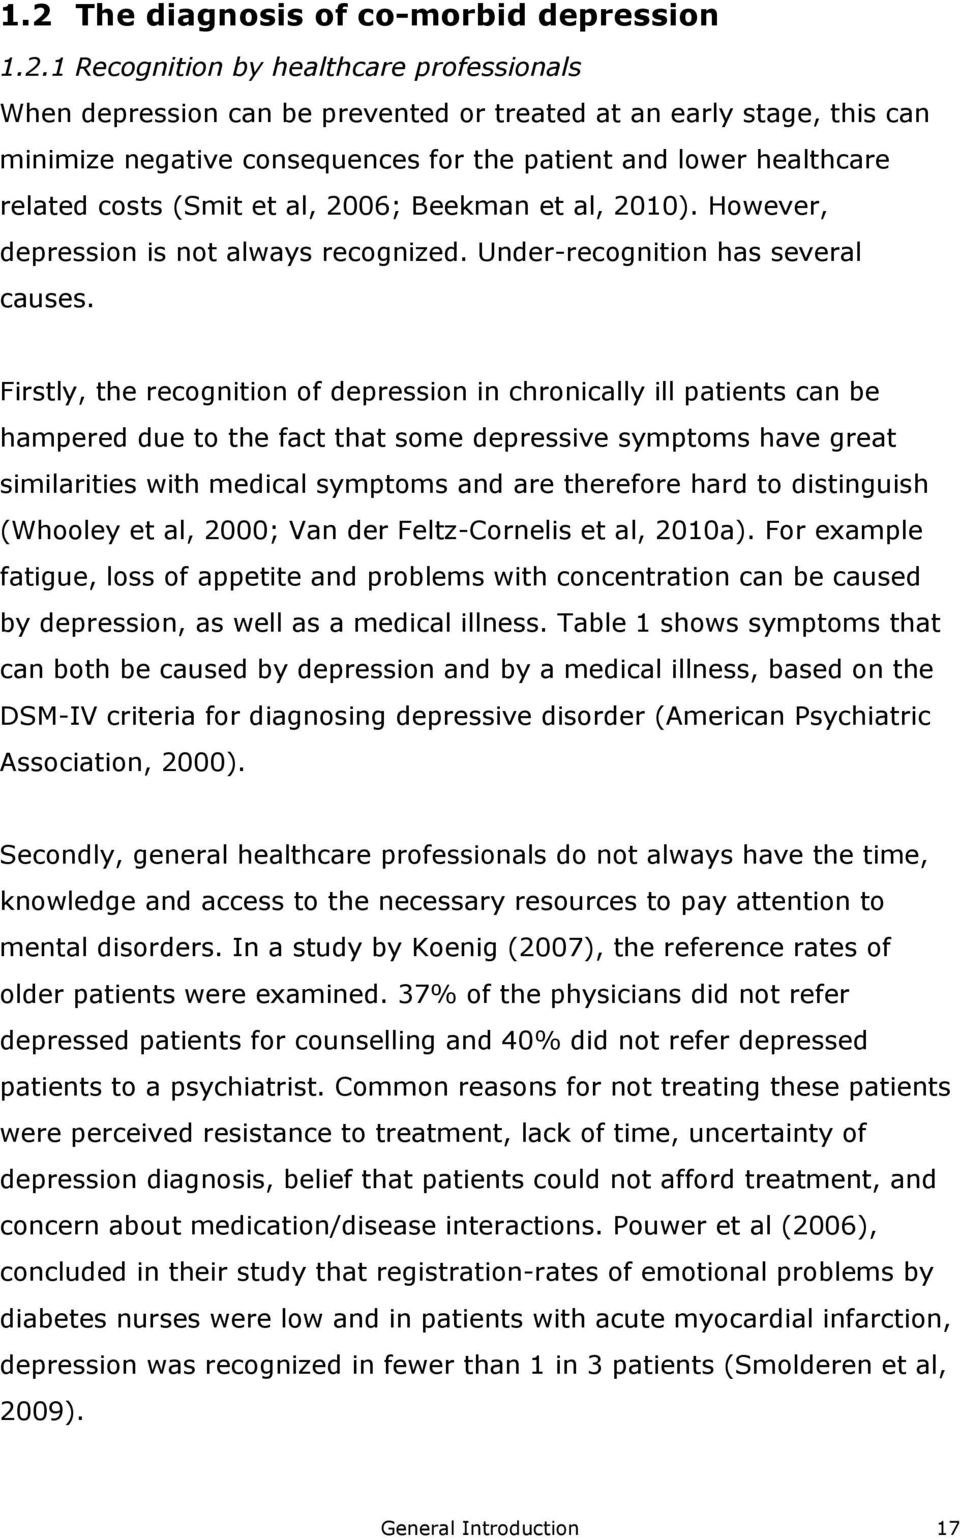 Firstly, the recognition of depression in chronically ill patients can be hampered due to the fact that some depressive symptoms have great similarities with medical symptoms and are therefore hard